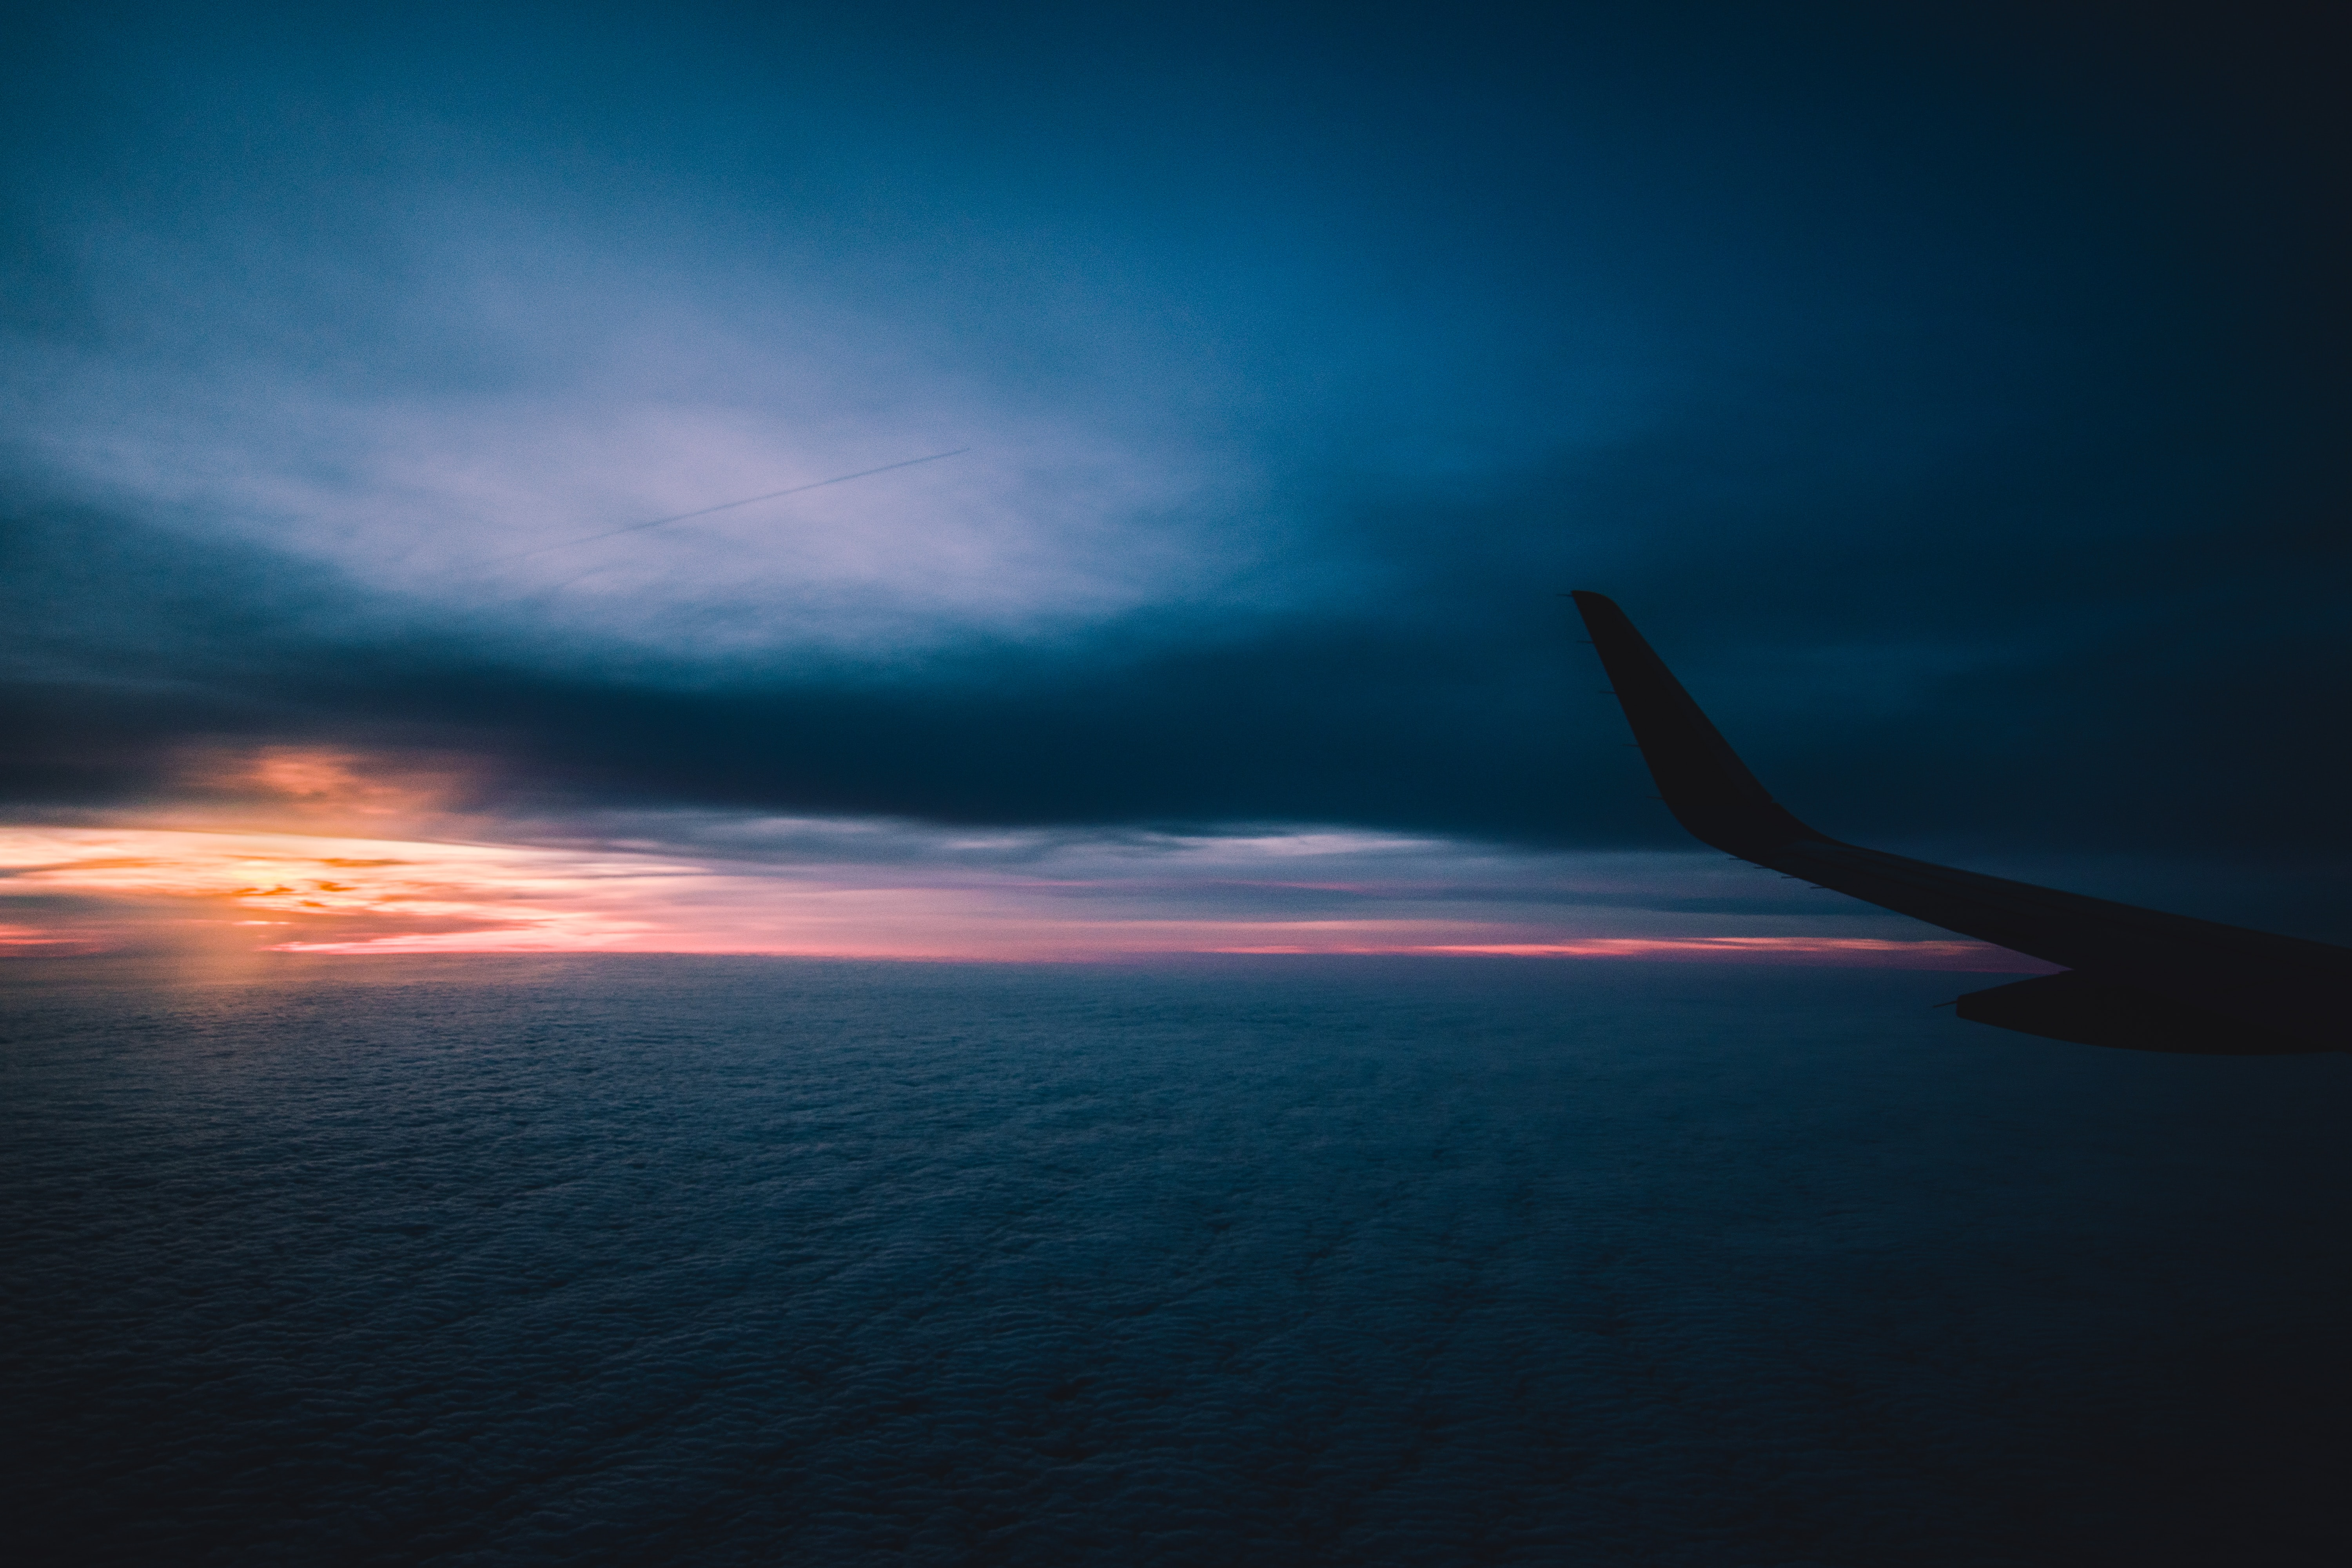 silhouette of airplane flying through sky